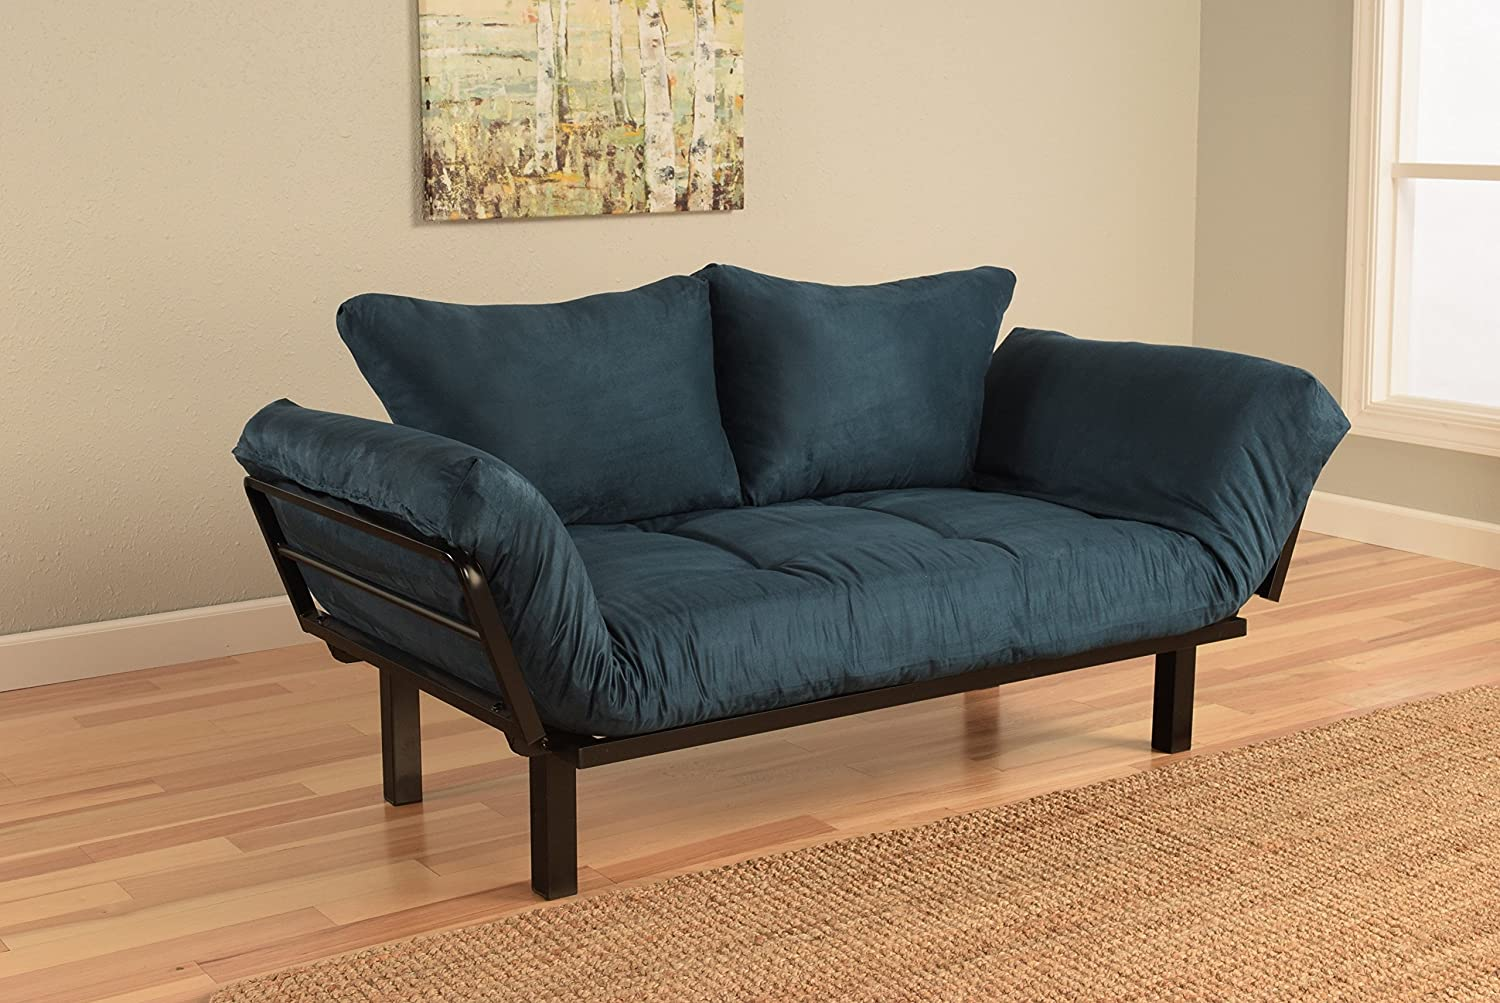 Kodiak Furniture Futon Lounger